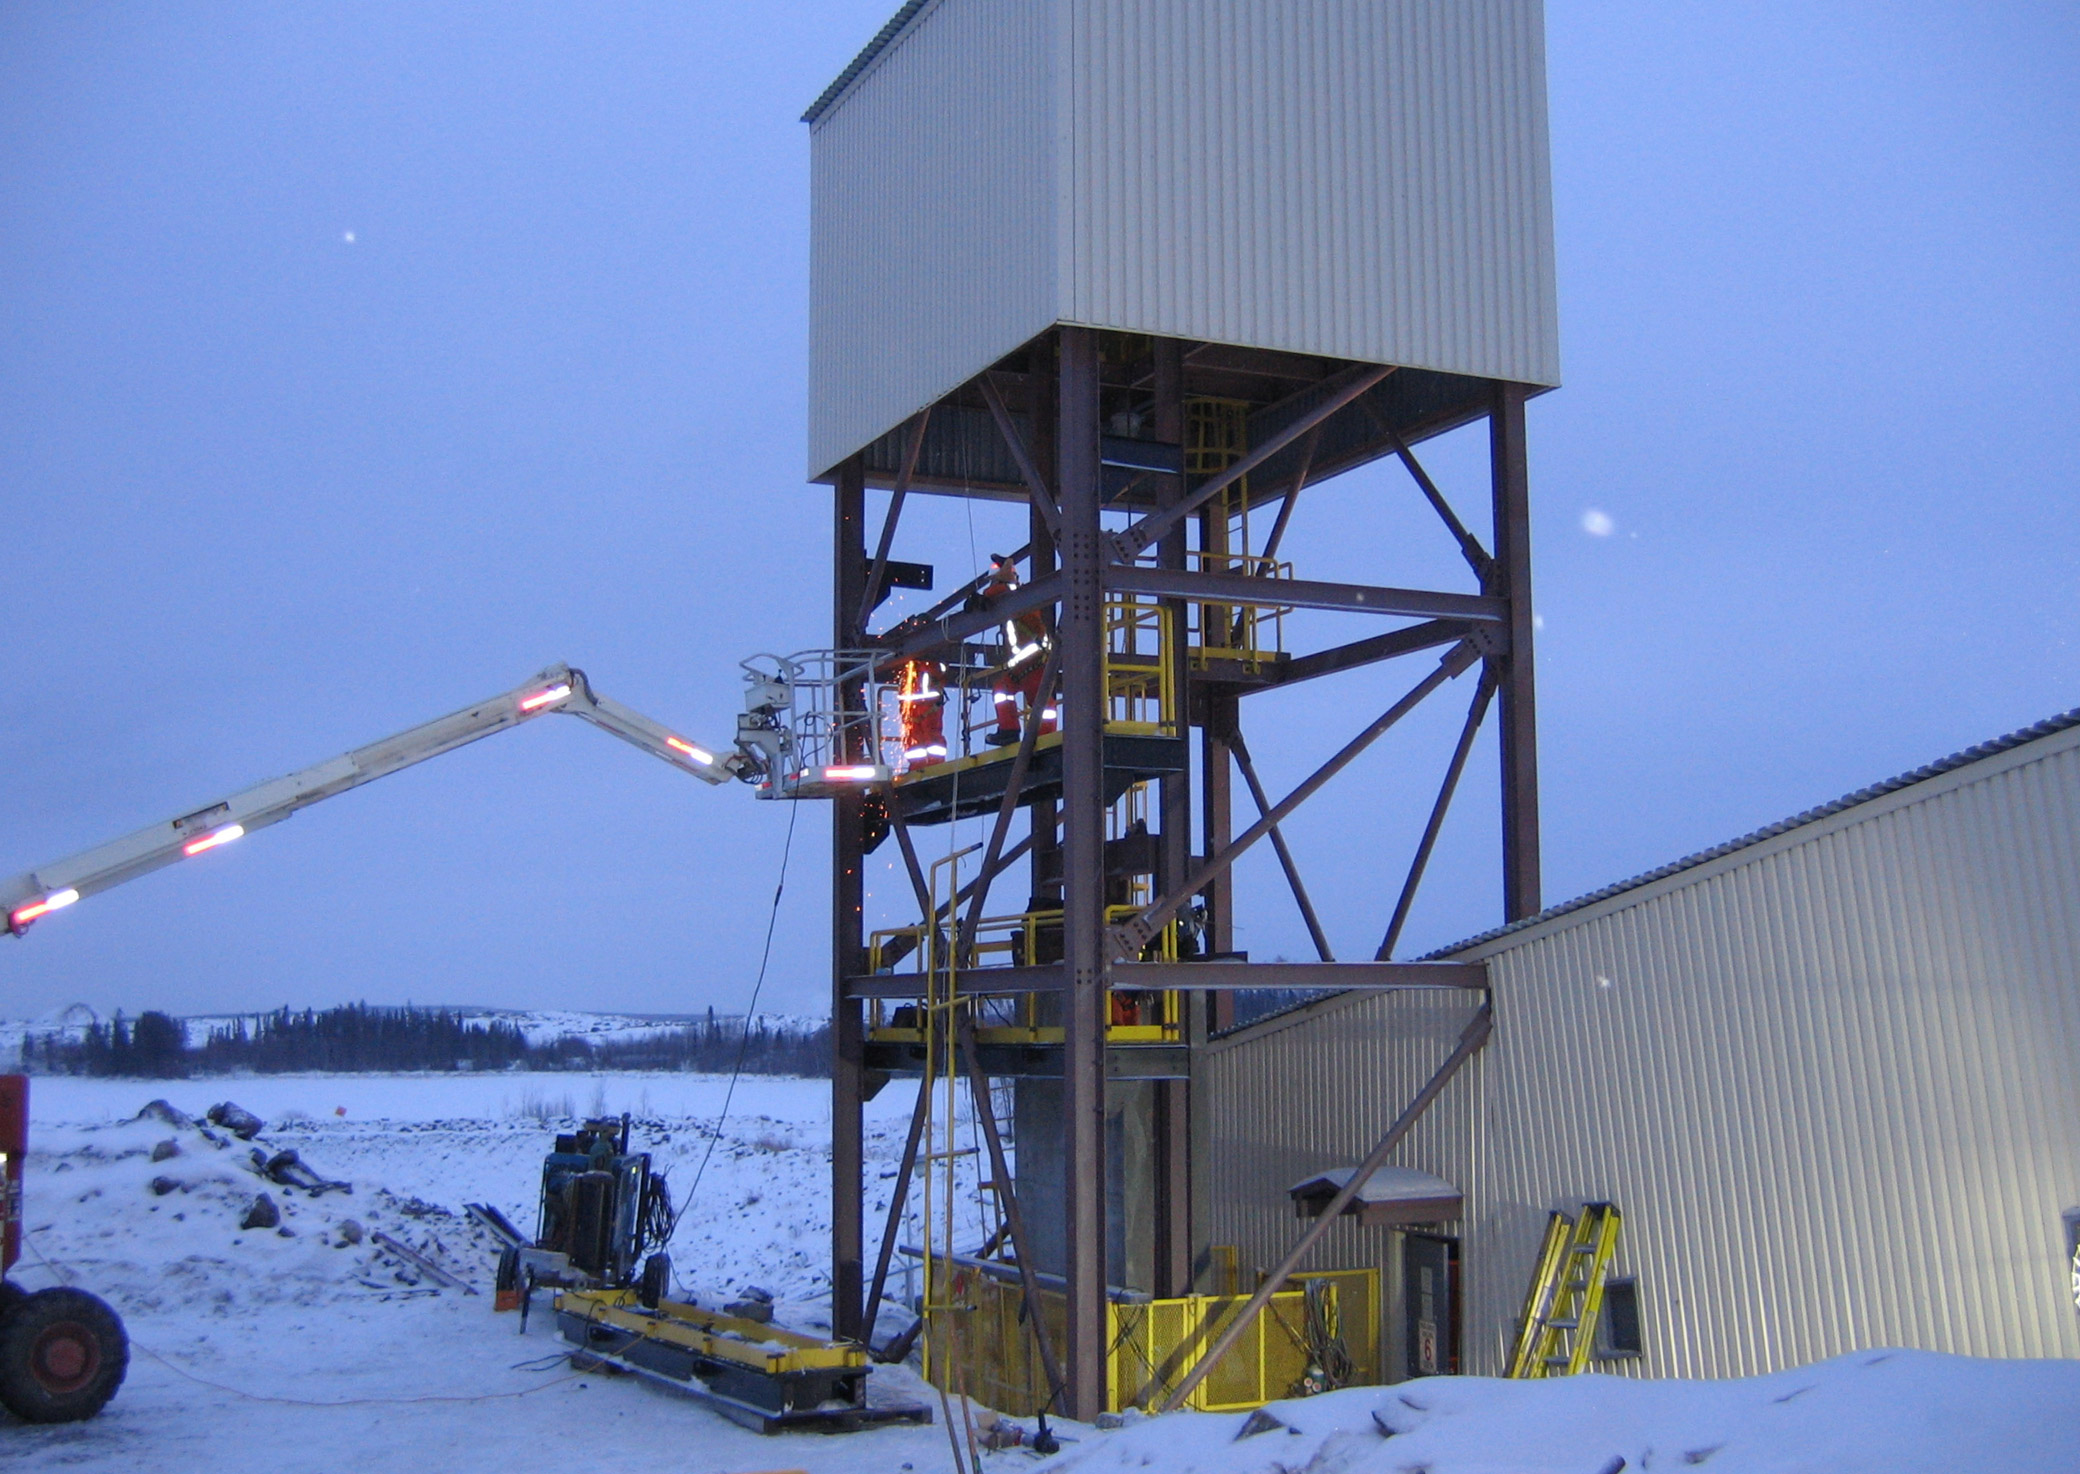 Take up tower fabricated and being installed in harsh winter conditions by Rector Machine Works